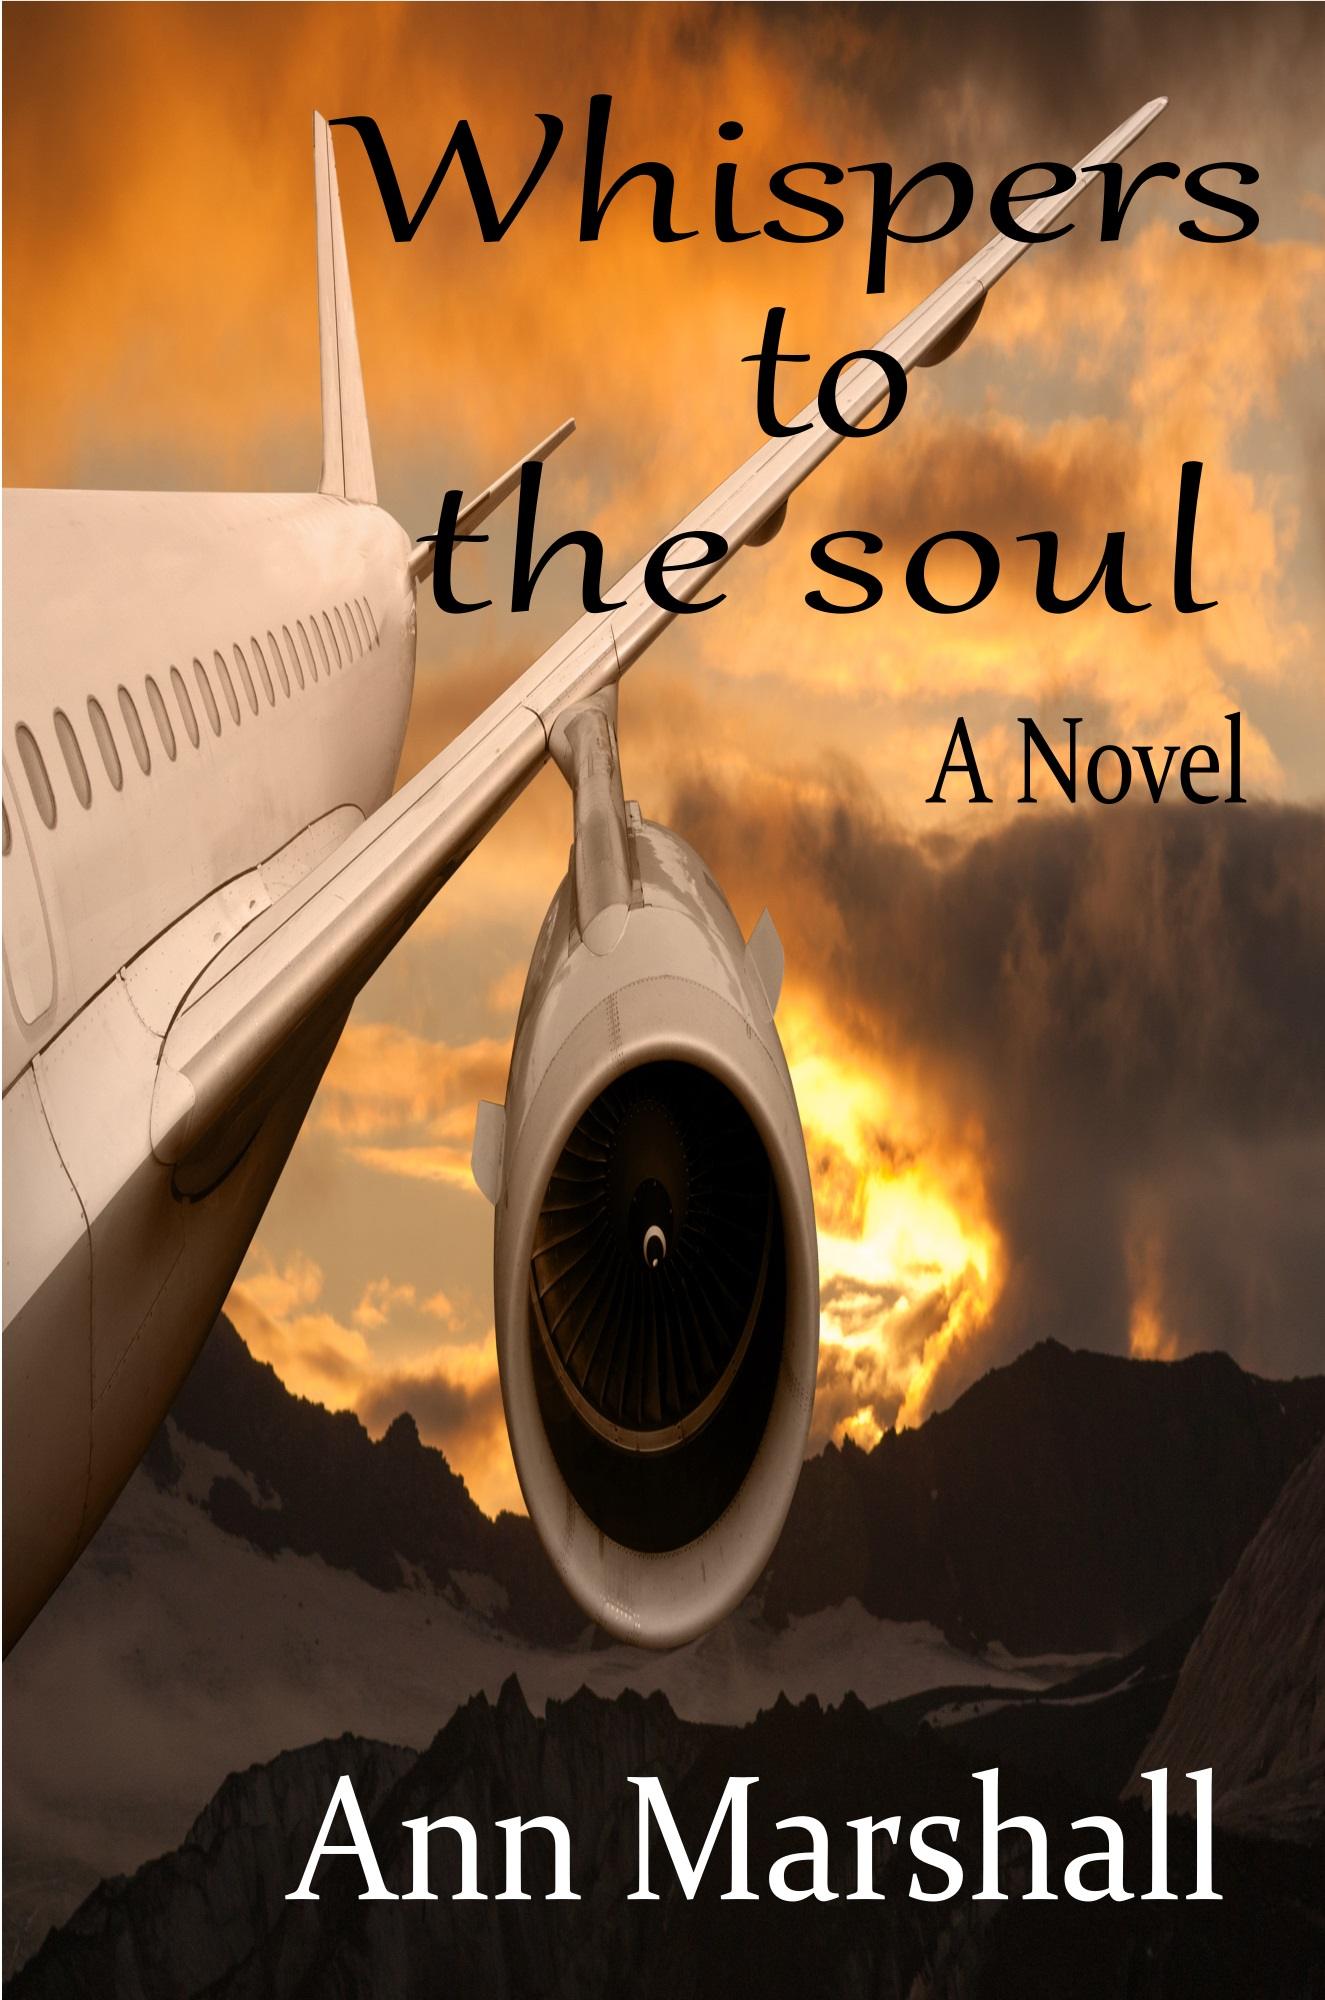 Whispers to the soul cover for kindle 2018 JPEG